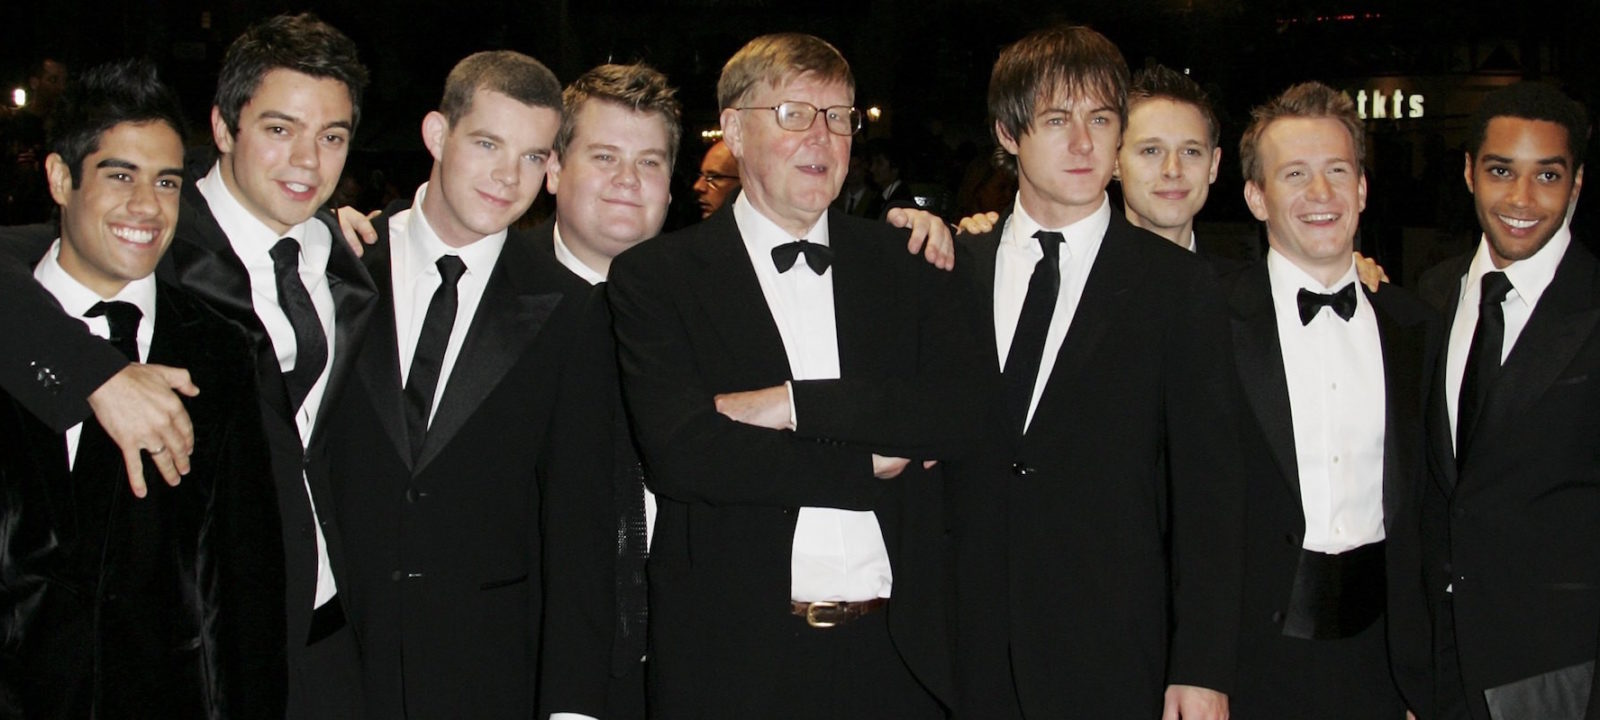 "Writer, Alan Bennett (centre) and the cast of the film arrive at the UK film Premiere of ""The History Boys"" at the Odeon West End, Leicester Square on October 2, 2006 in London, England."